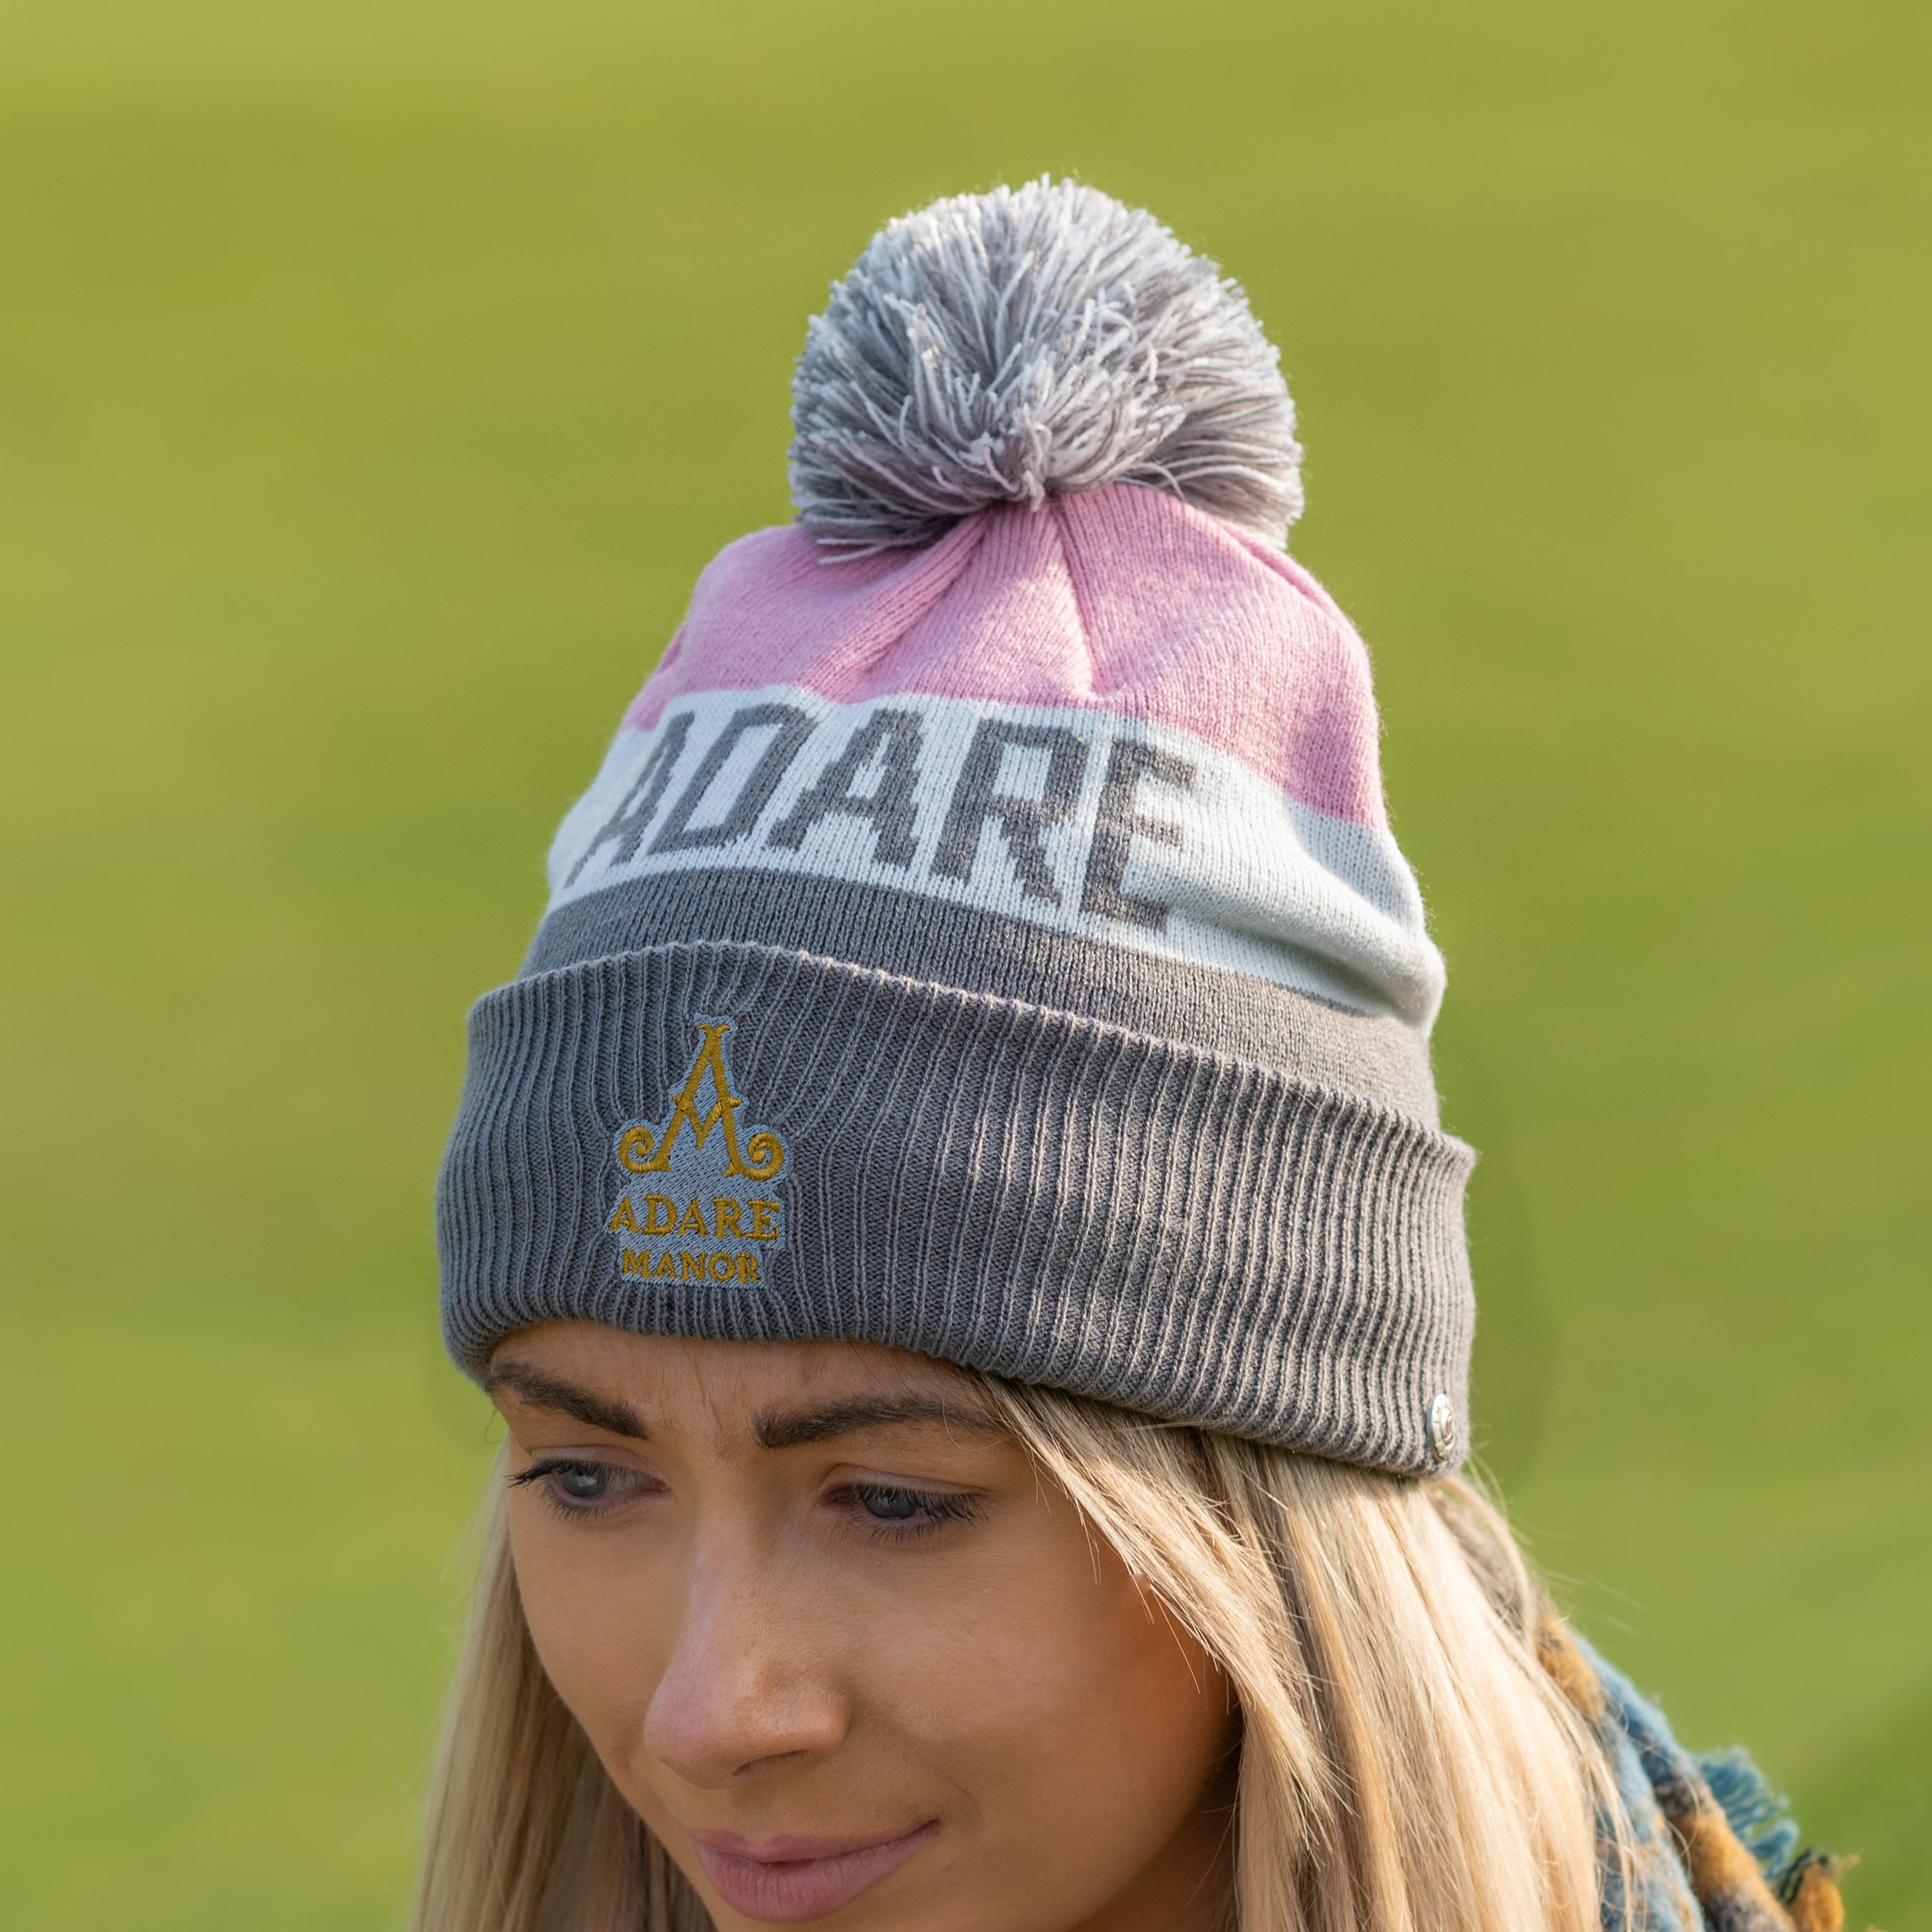 Adare Manor Wooly Hat